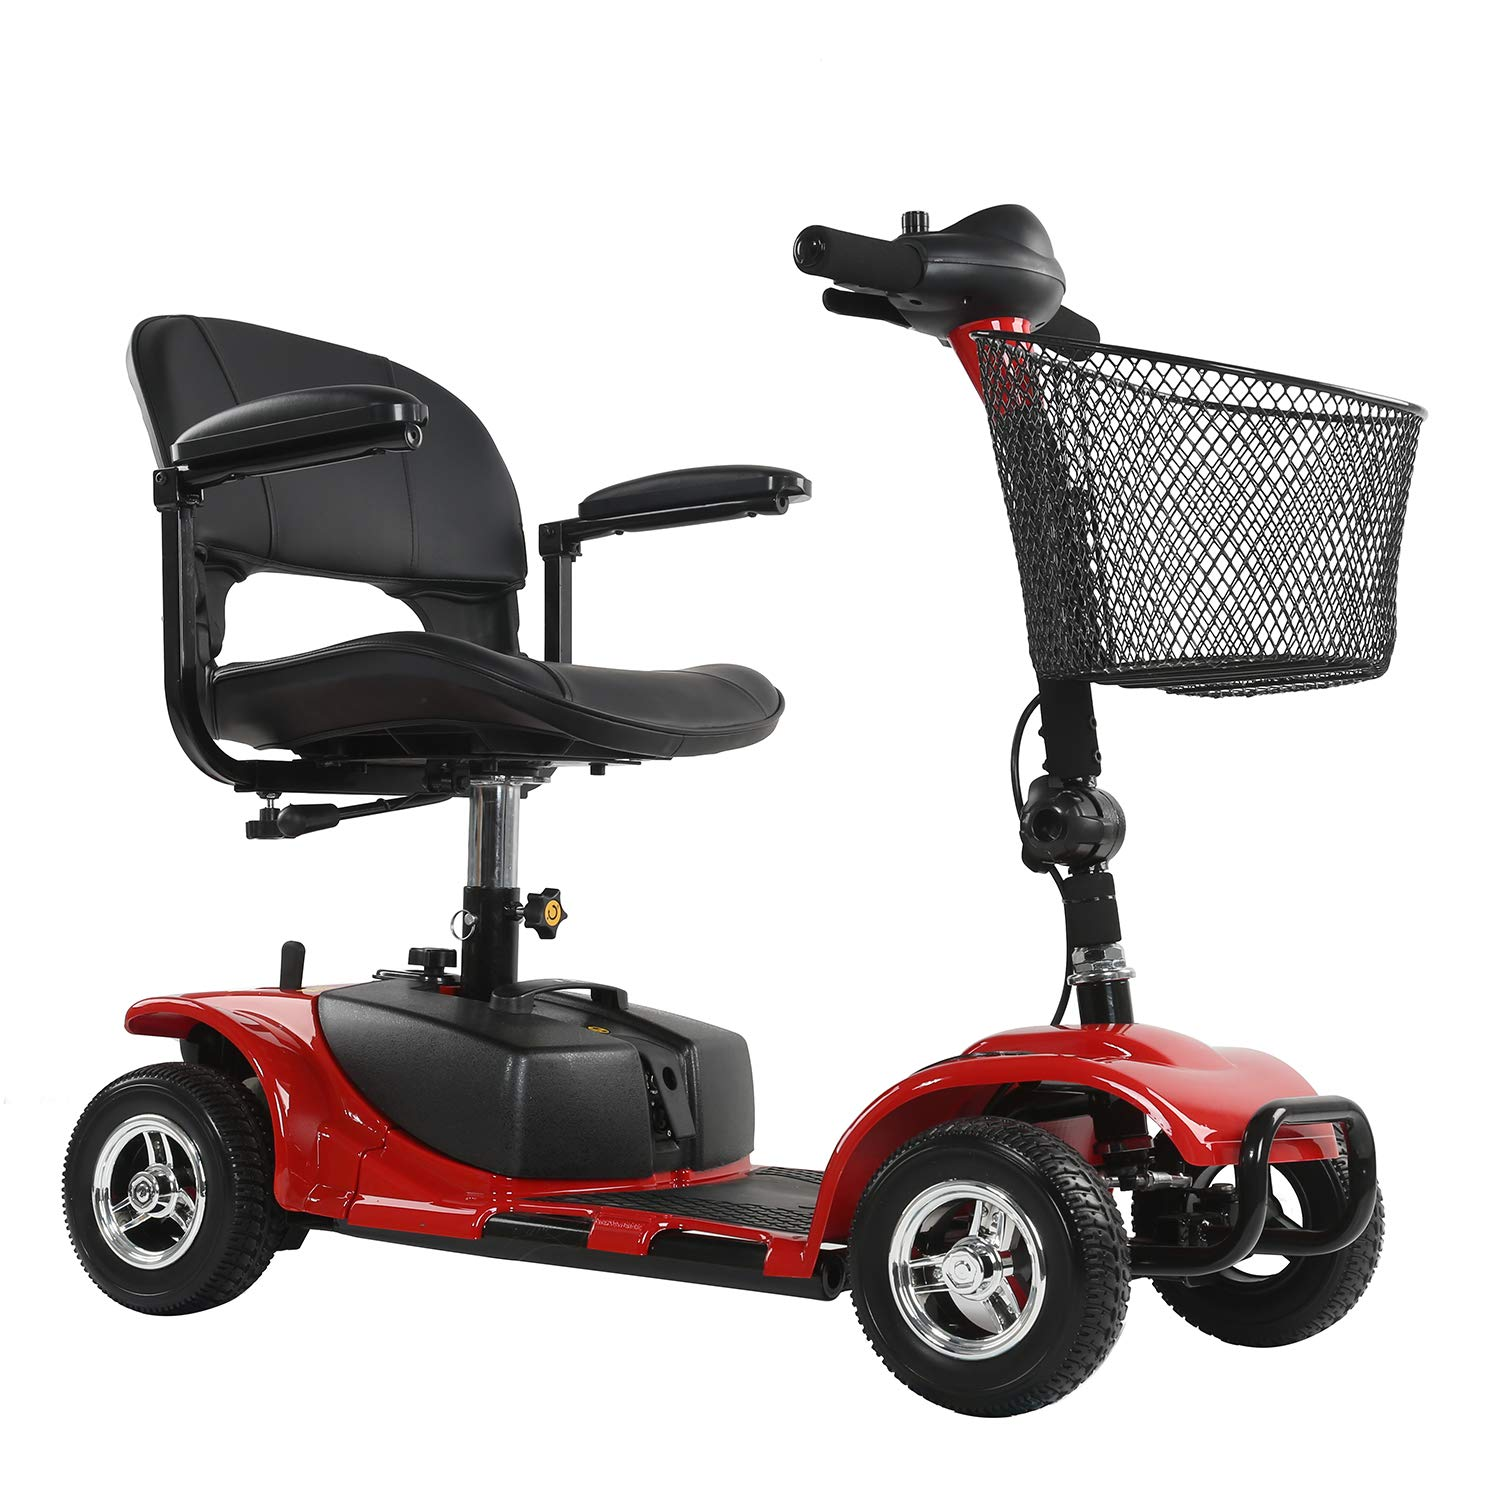 ENGWE 4 Wheels Electric Scooter for Adults Power Mobility Scooter Heavy Duty Seniors Travel Scooter by ENGWE